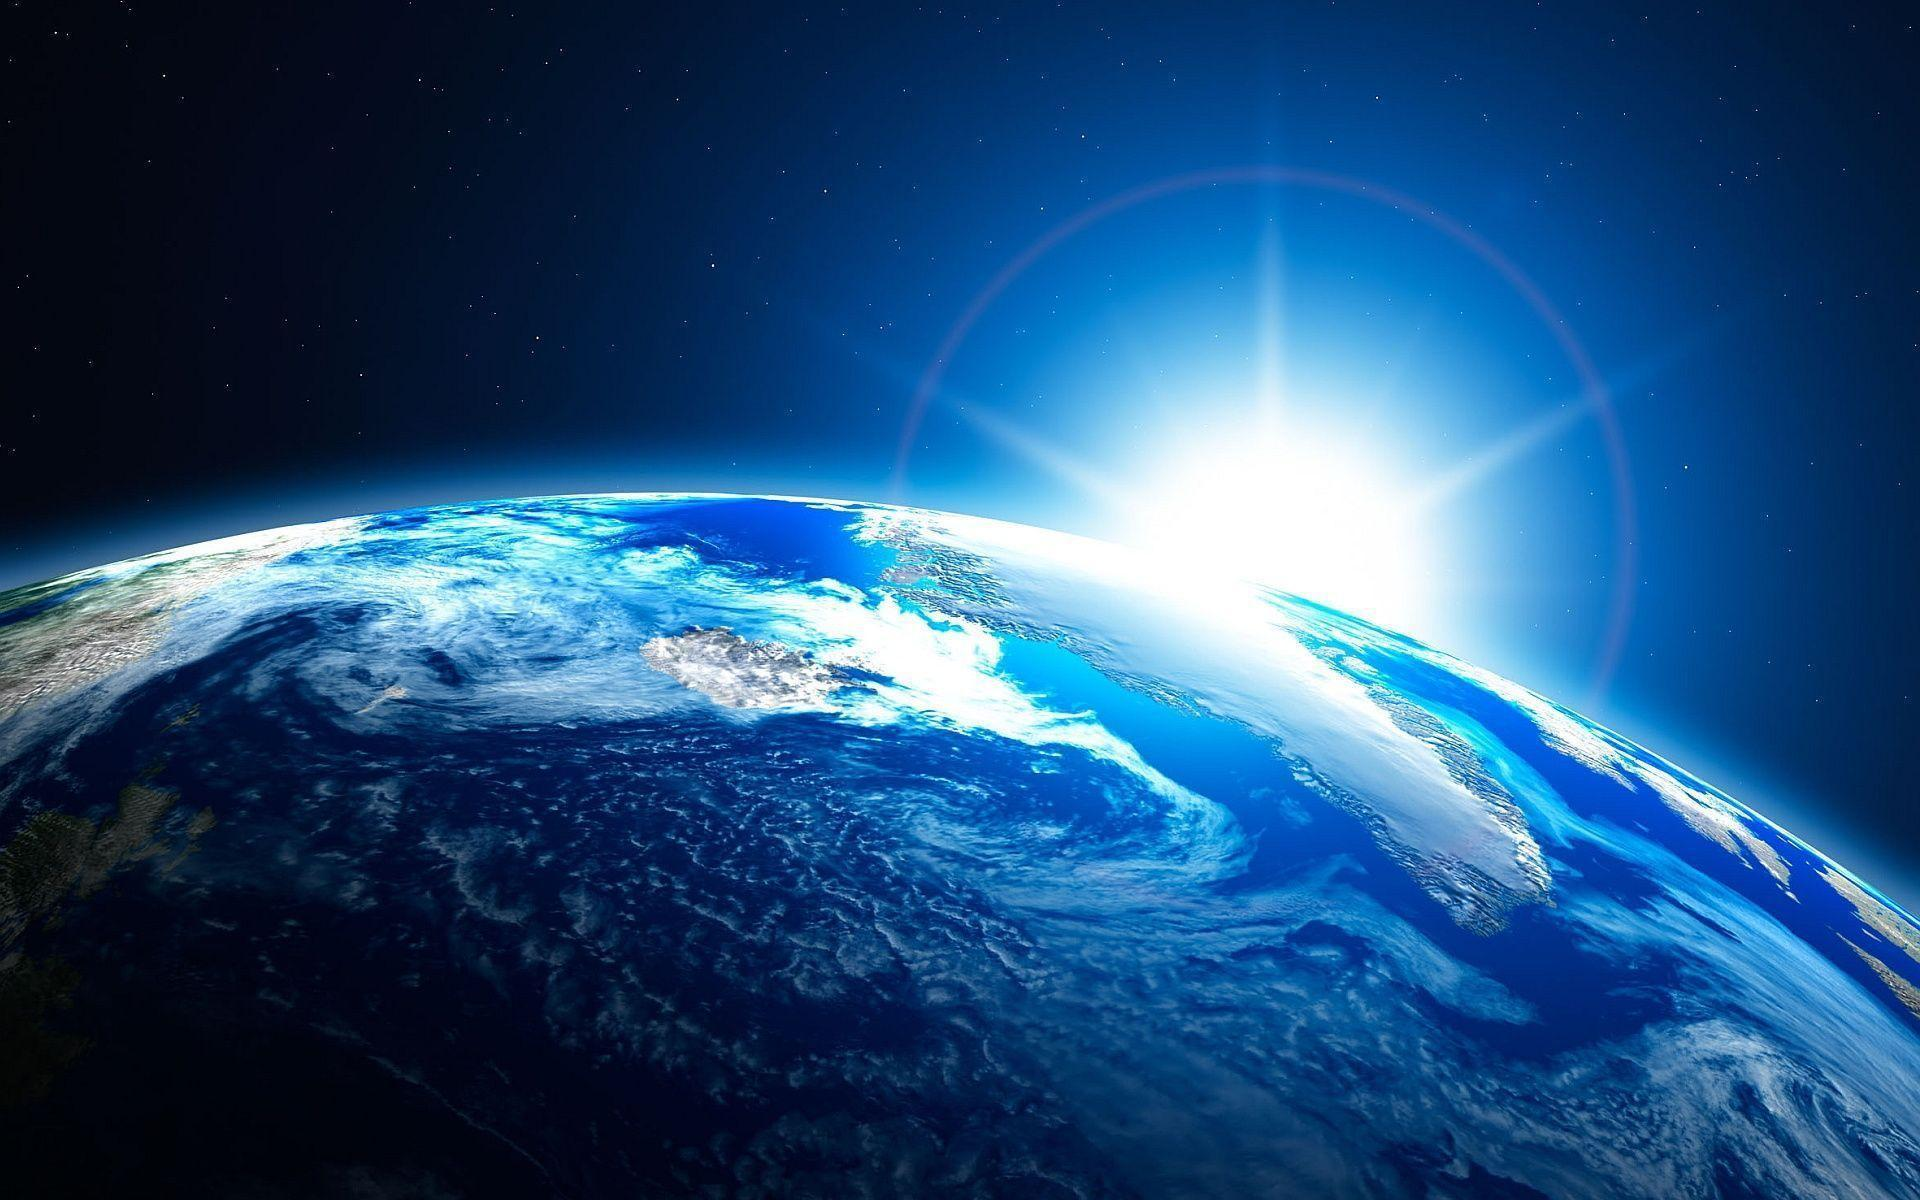 Earth Wallpaper 4 amazing image 23535 HD Wallpaper | Wallroro.